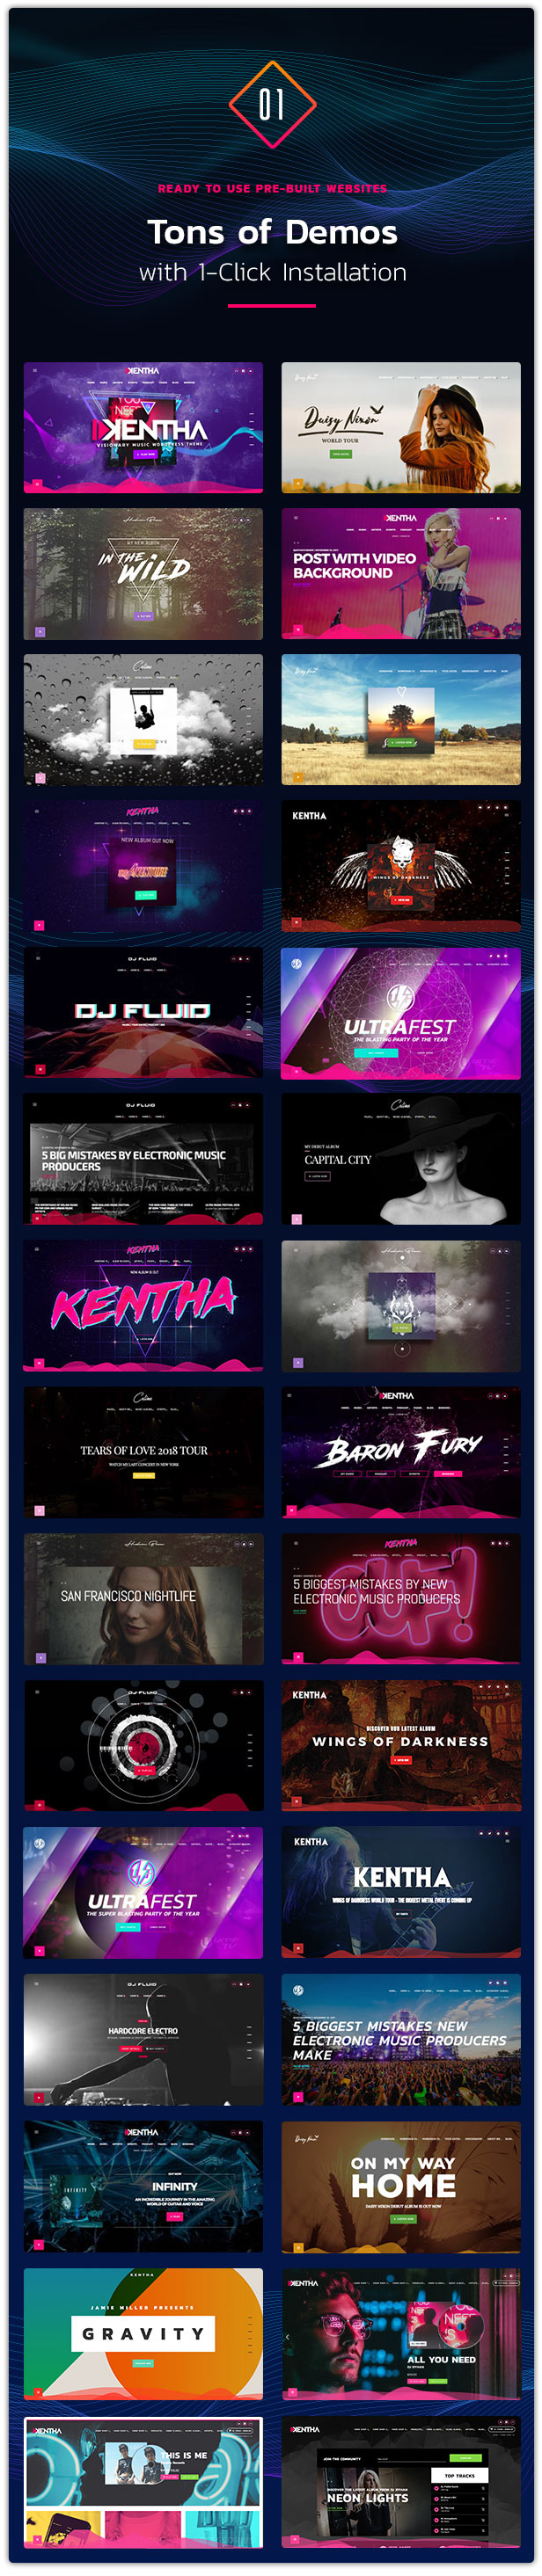 Kentha Music WordPress Theme 02